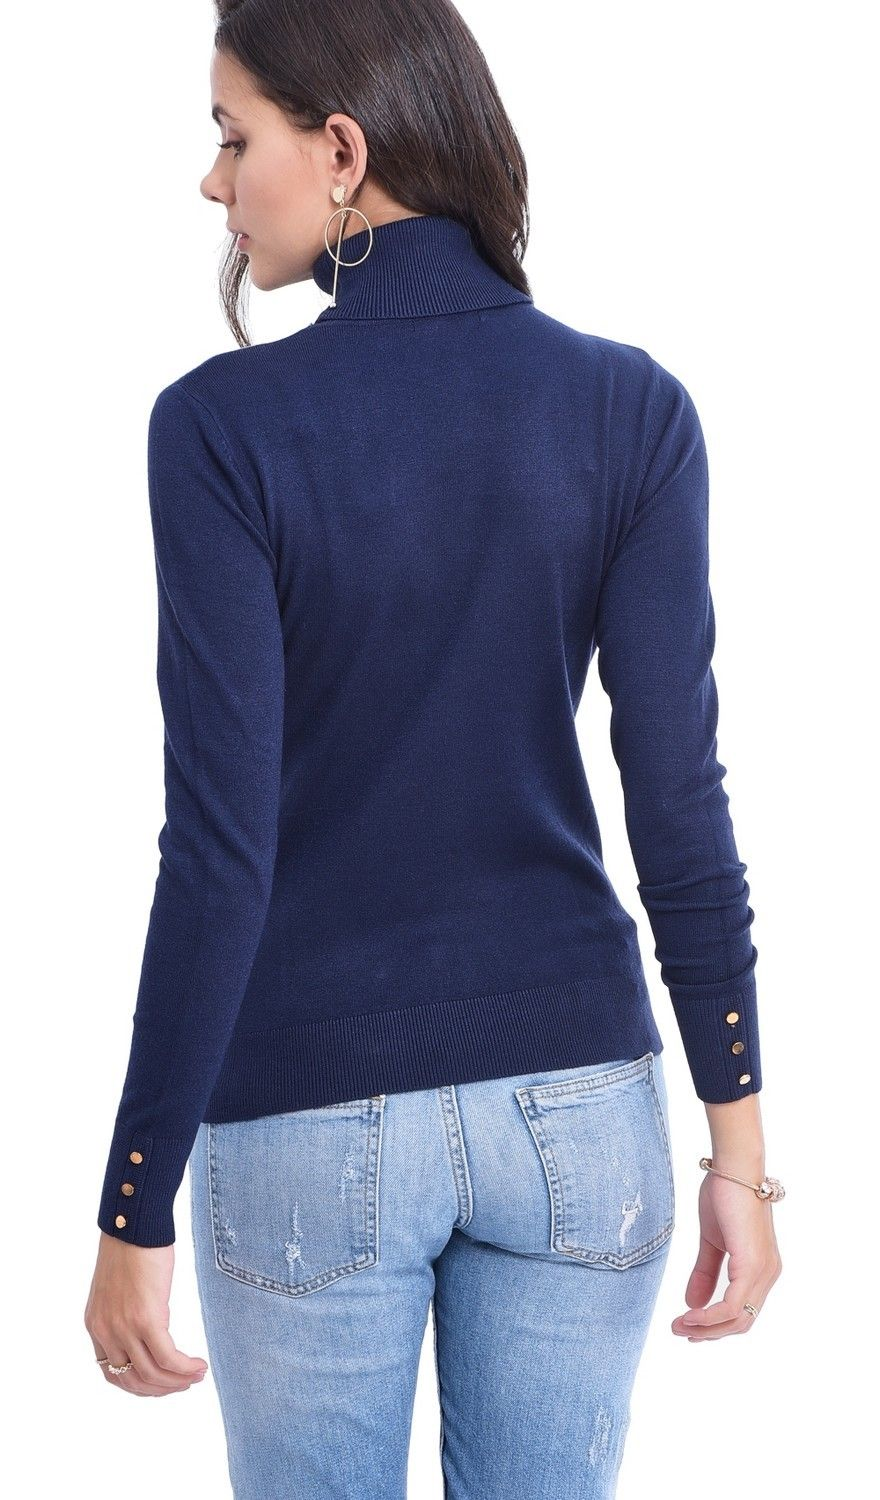 Assuili Roll Neck Sweater with Buttoned Sleeves in Navy